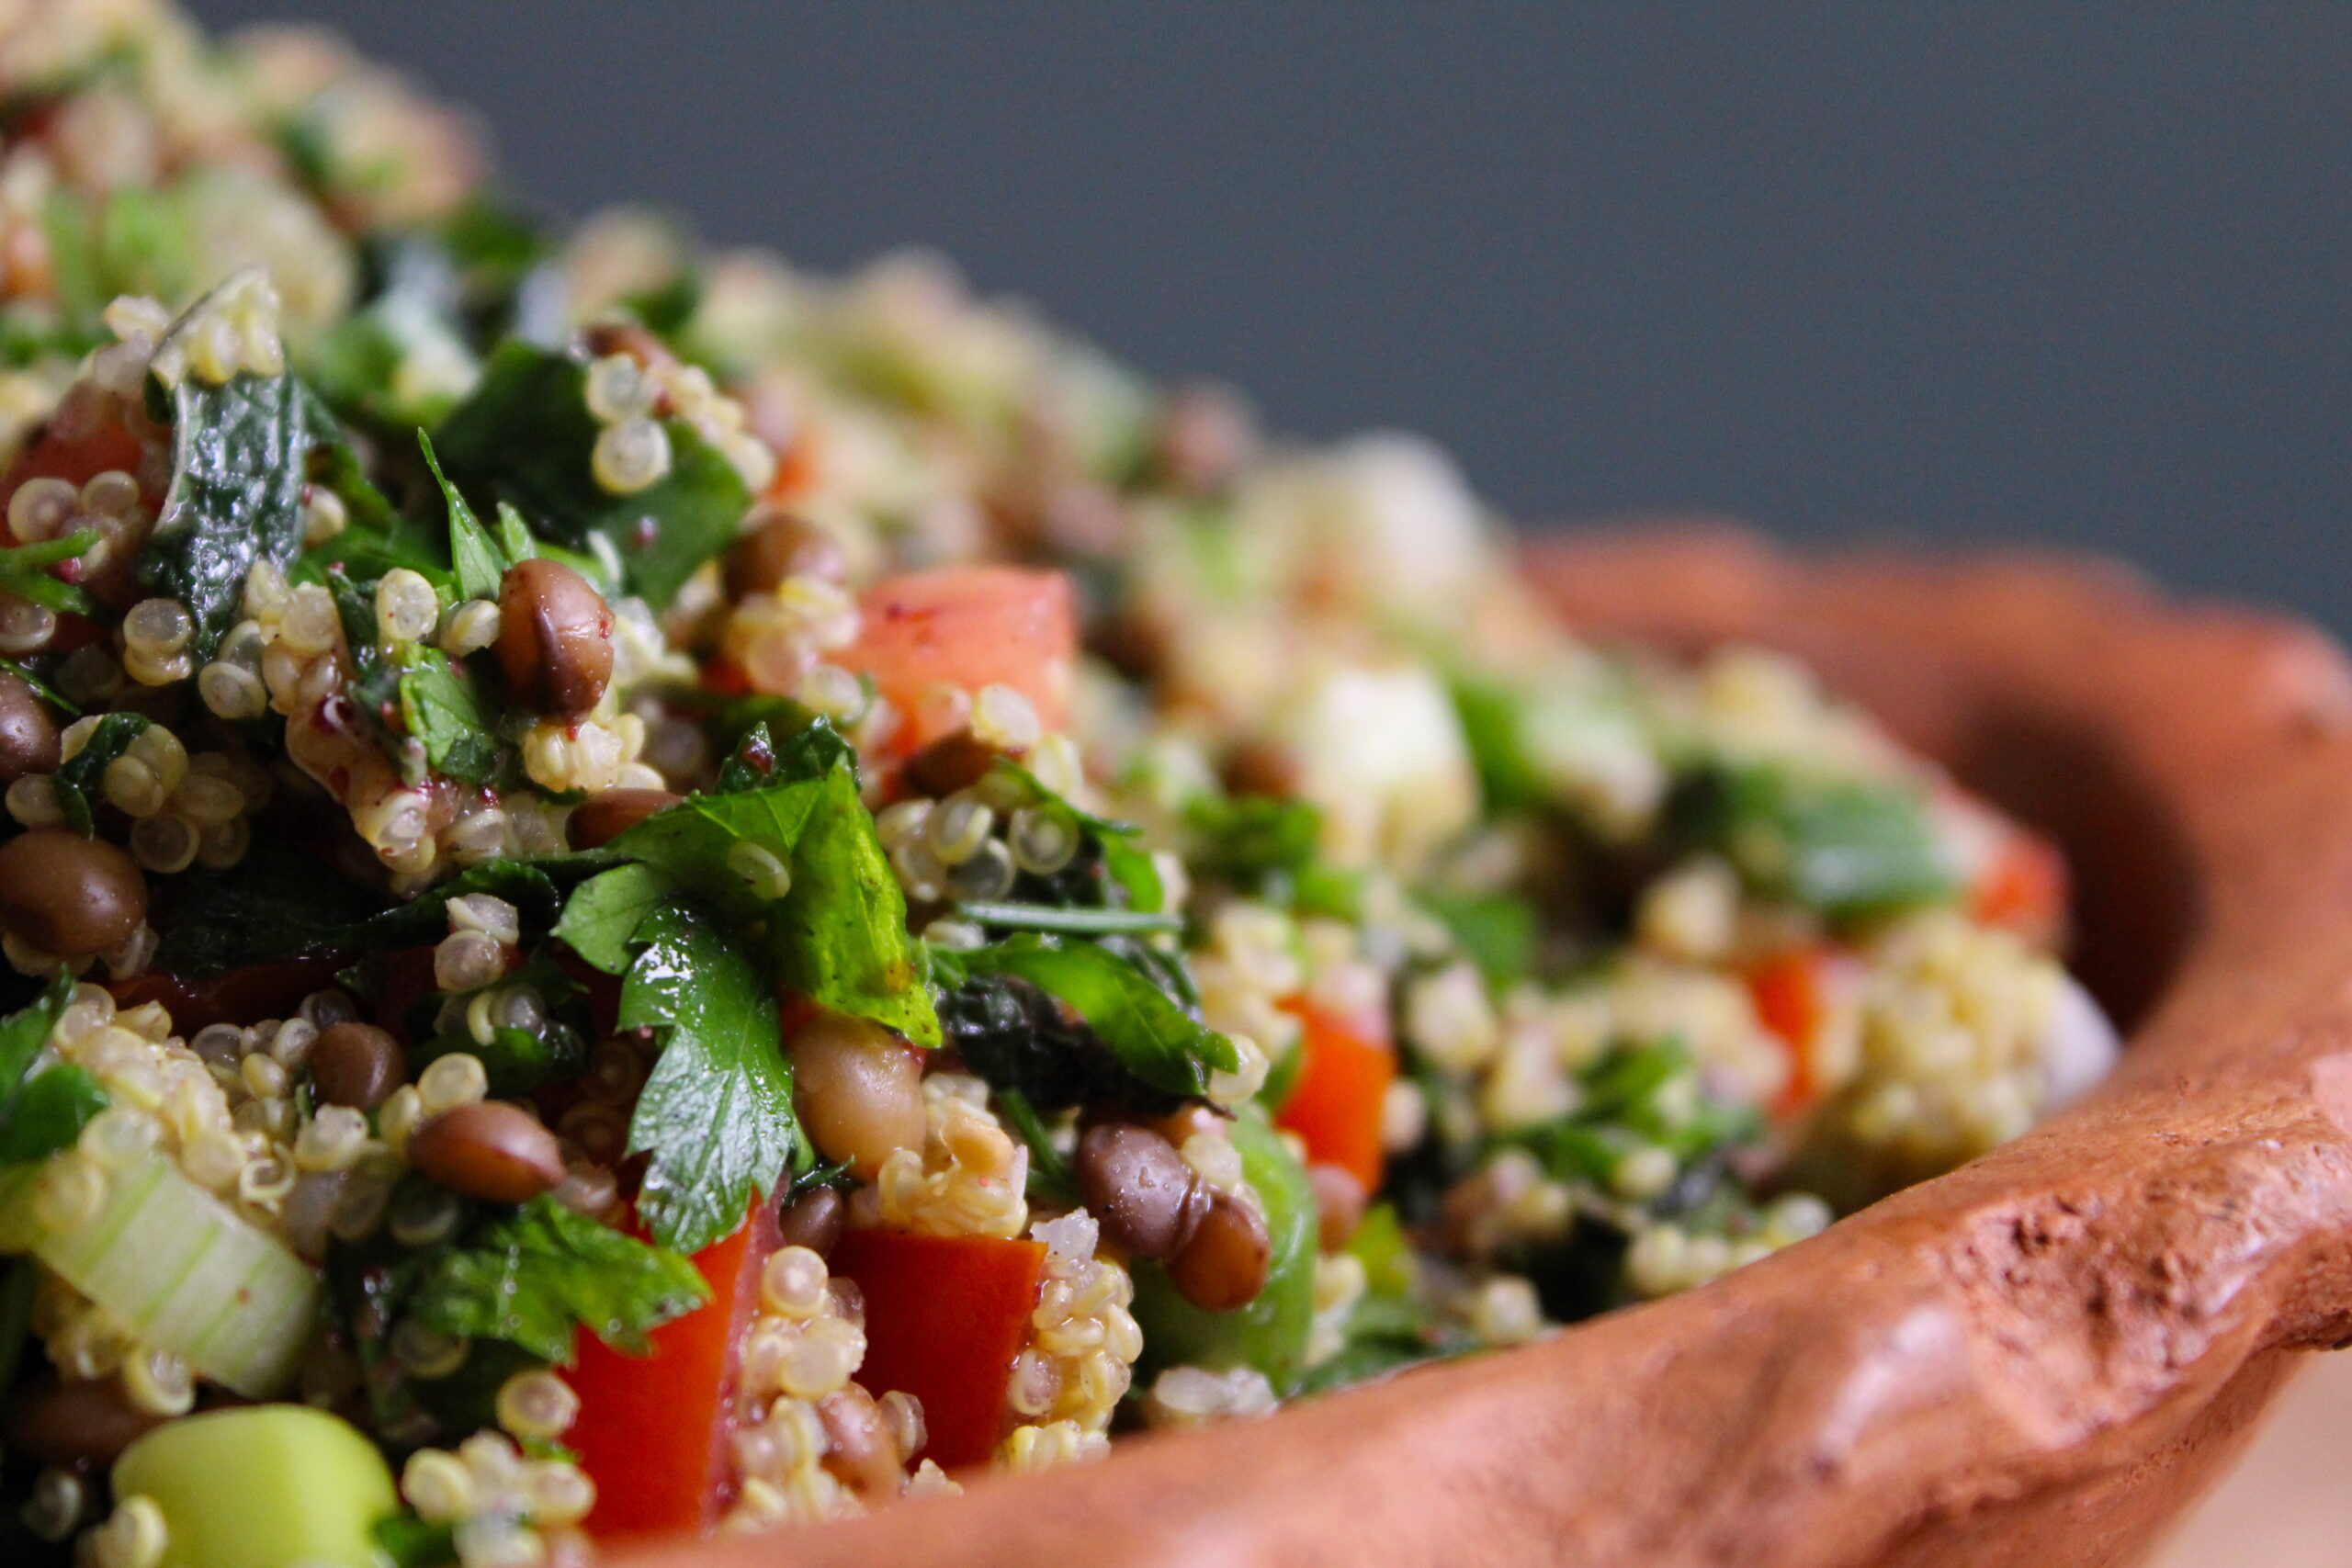 Salad of lentils and quinoa